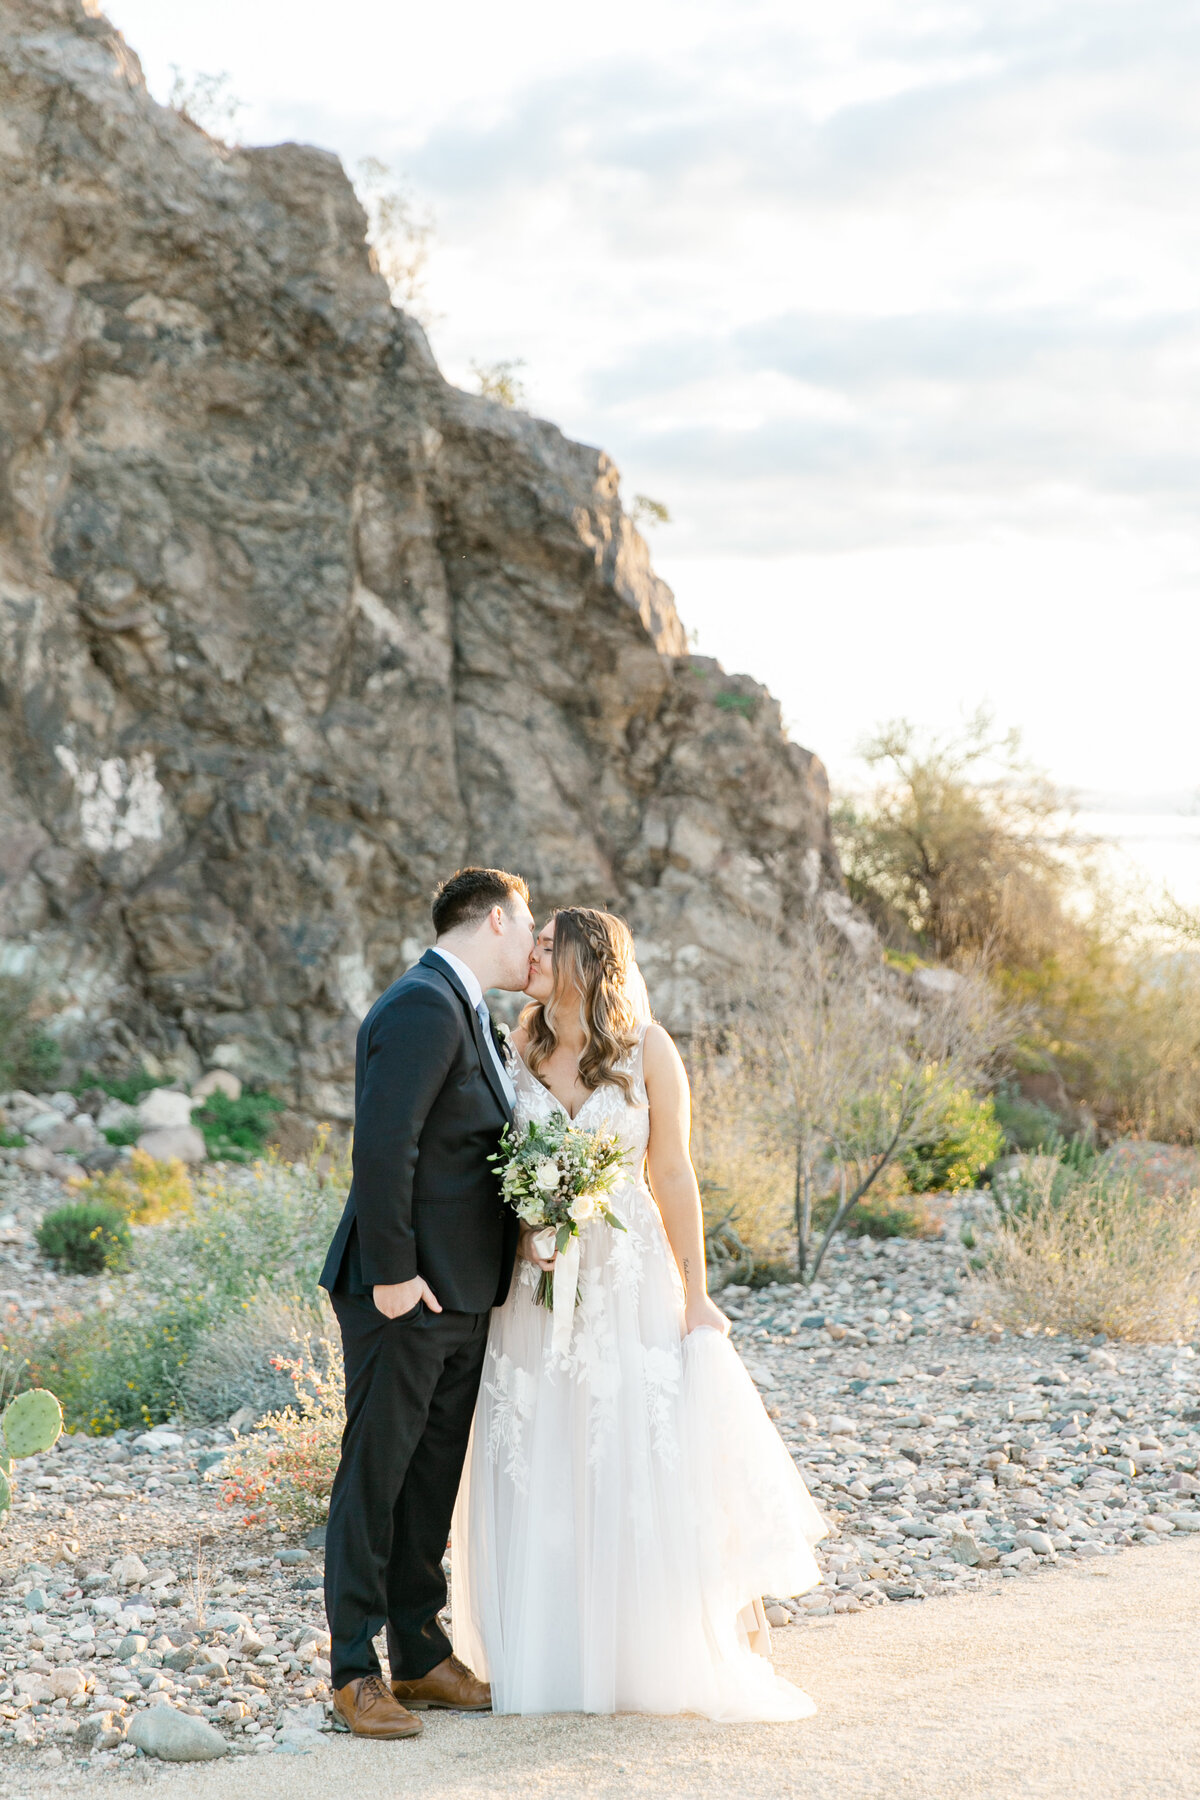 Karlie Colleen Photography - Arizona Backyard wedding - Brittney & Josh-197